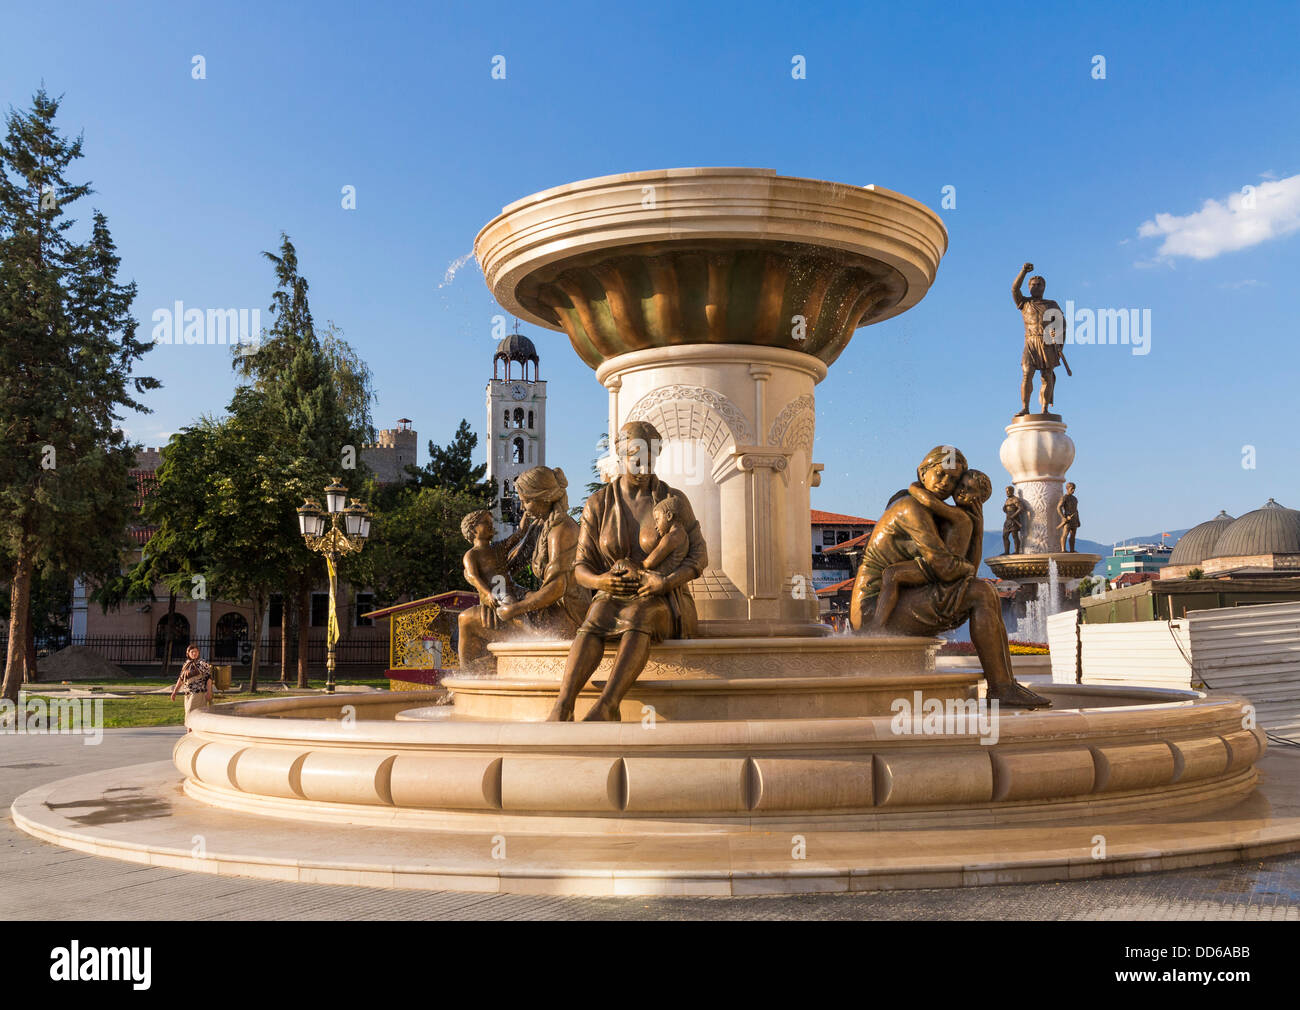 Skopje, Macedonia - Mothers of Macedonia Fountain statues, in Rebellion Square with Warrior Monument behind - Stock Image